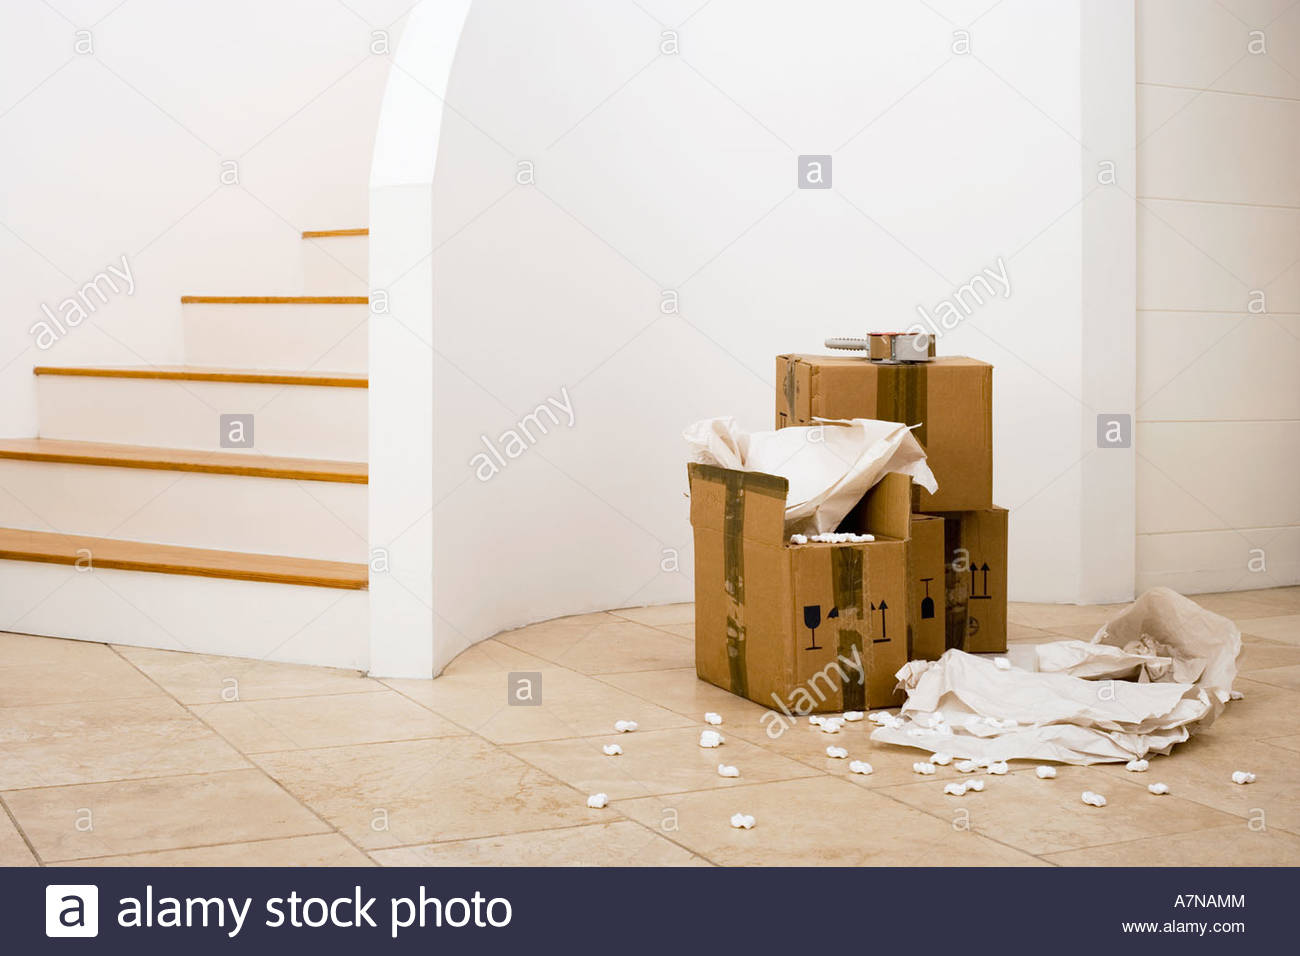 Small stack of boxes paper and packing foam beside staircase in sparse room - Stock Image